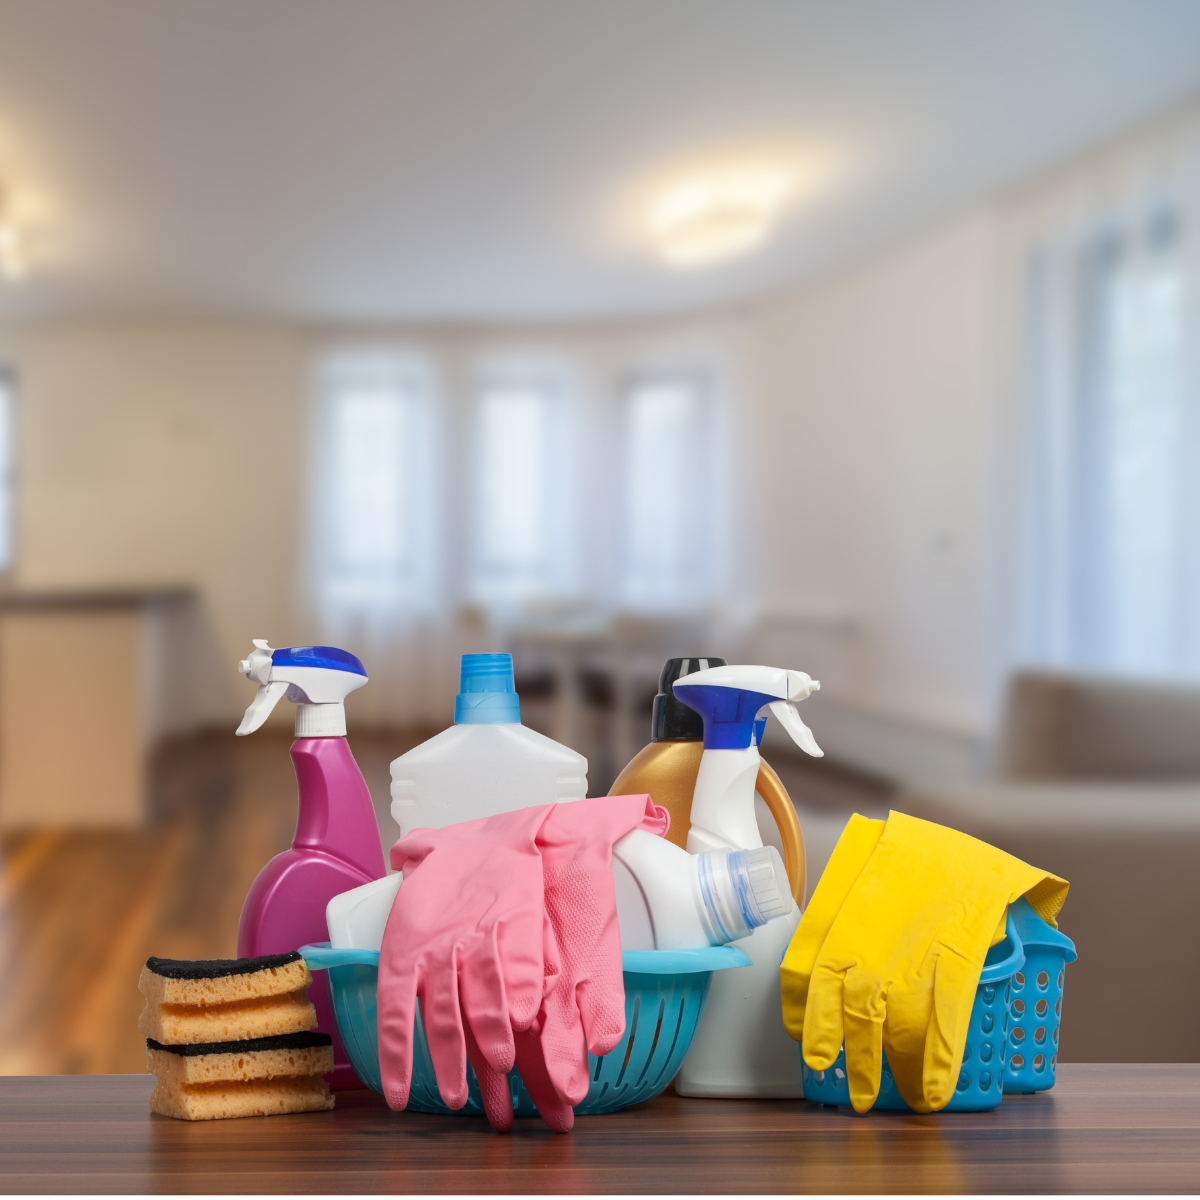 Cleaning Materials For Moving Your Elderly Parents Out of the Home